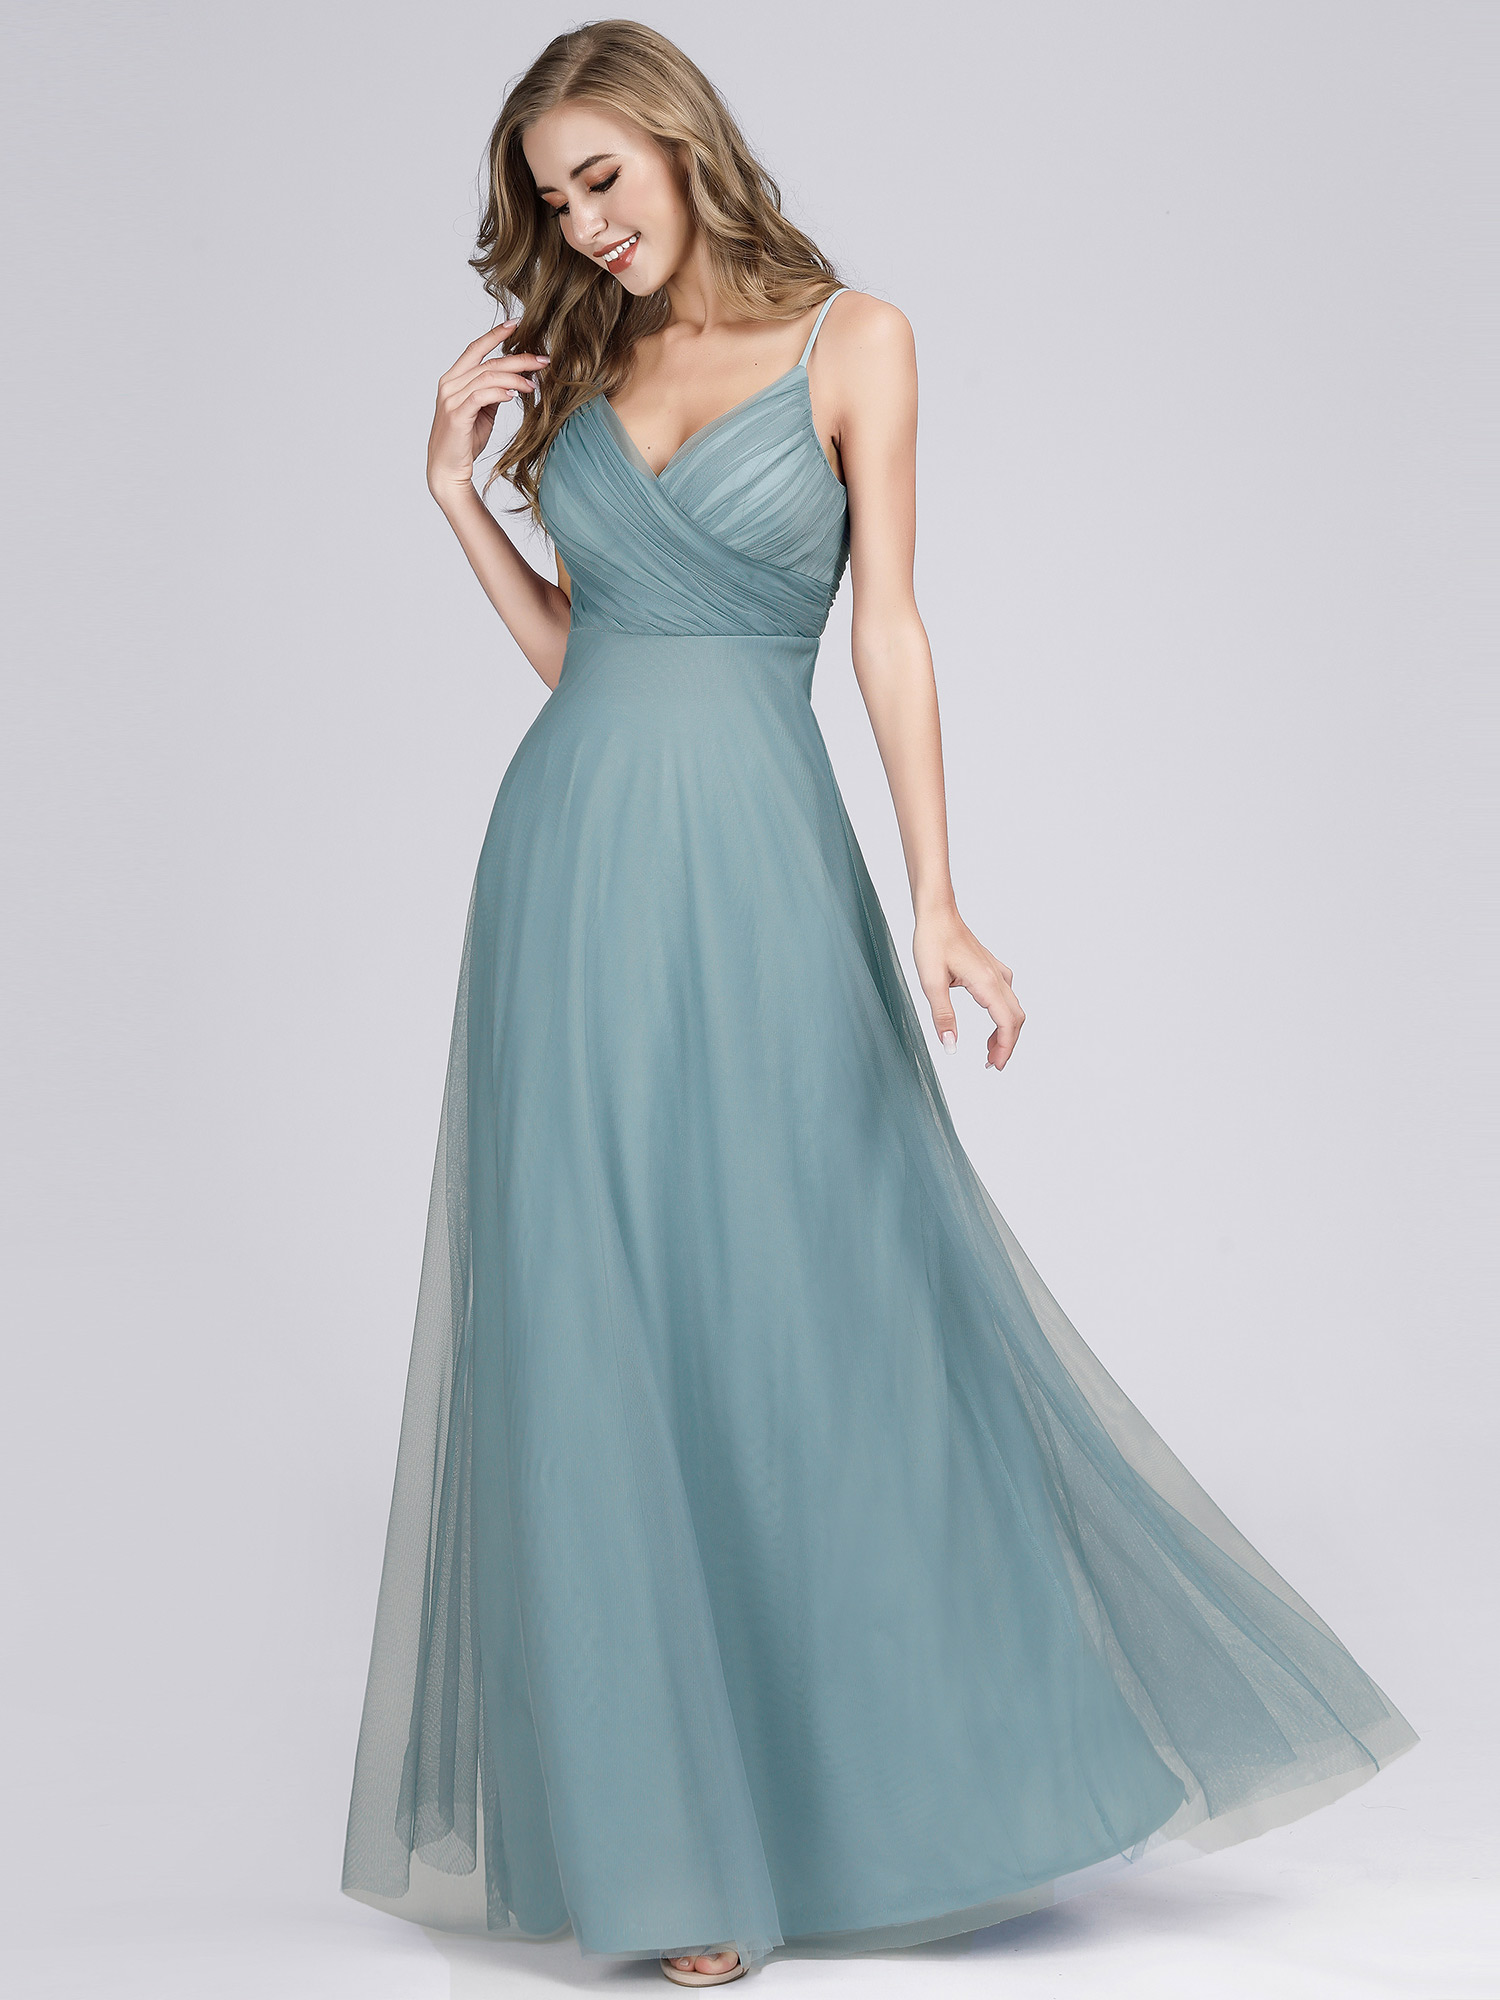 Ever-pretty-US-Formal-Evening-Prom-Gown-A-line-Cocktail-Homecoming-Party-Dresses thumbnail 11